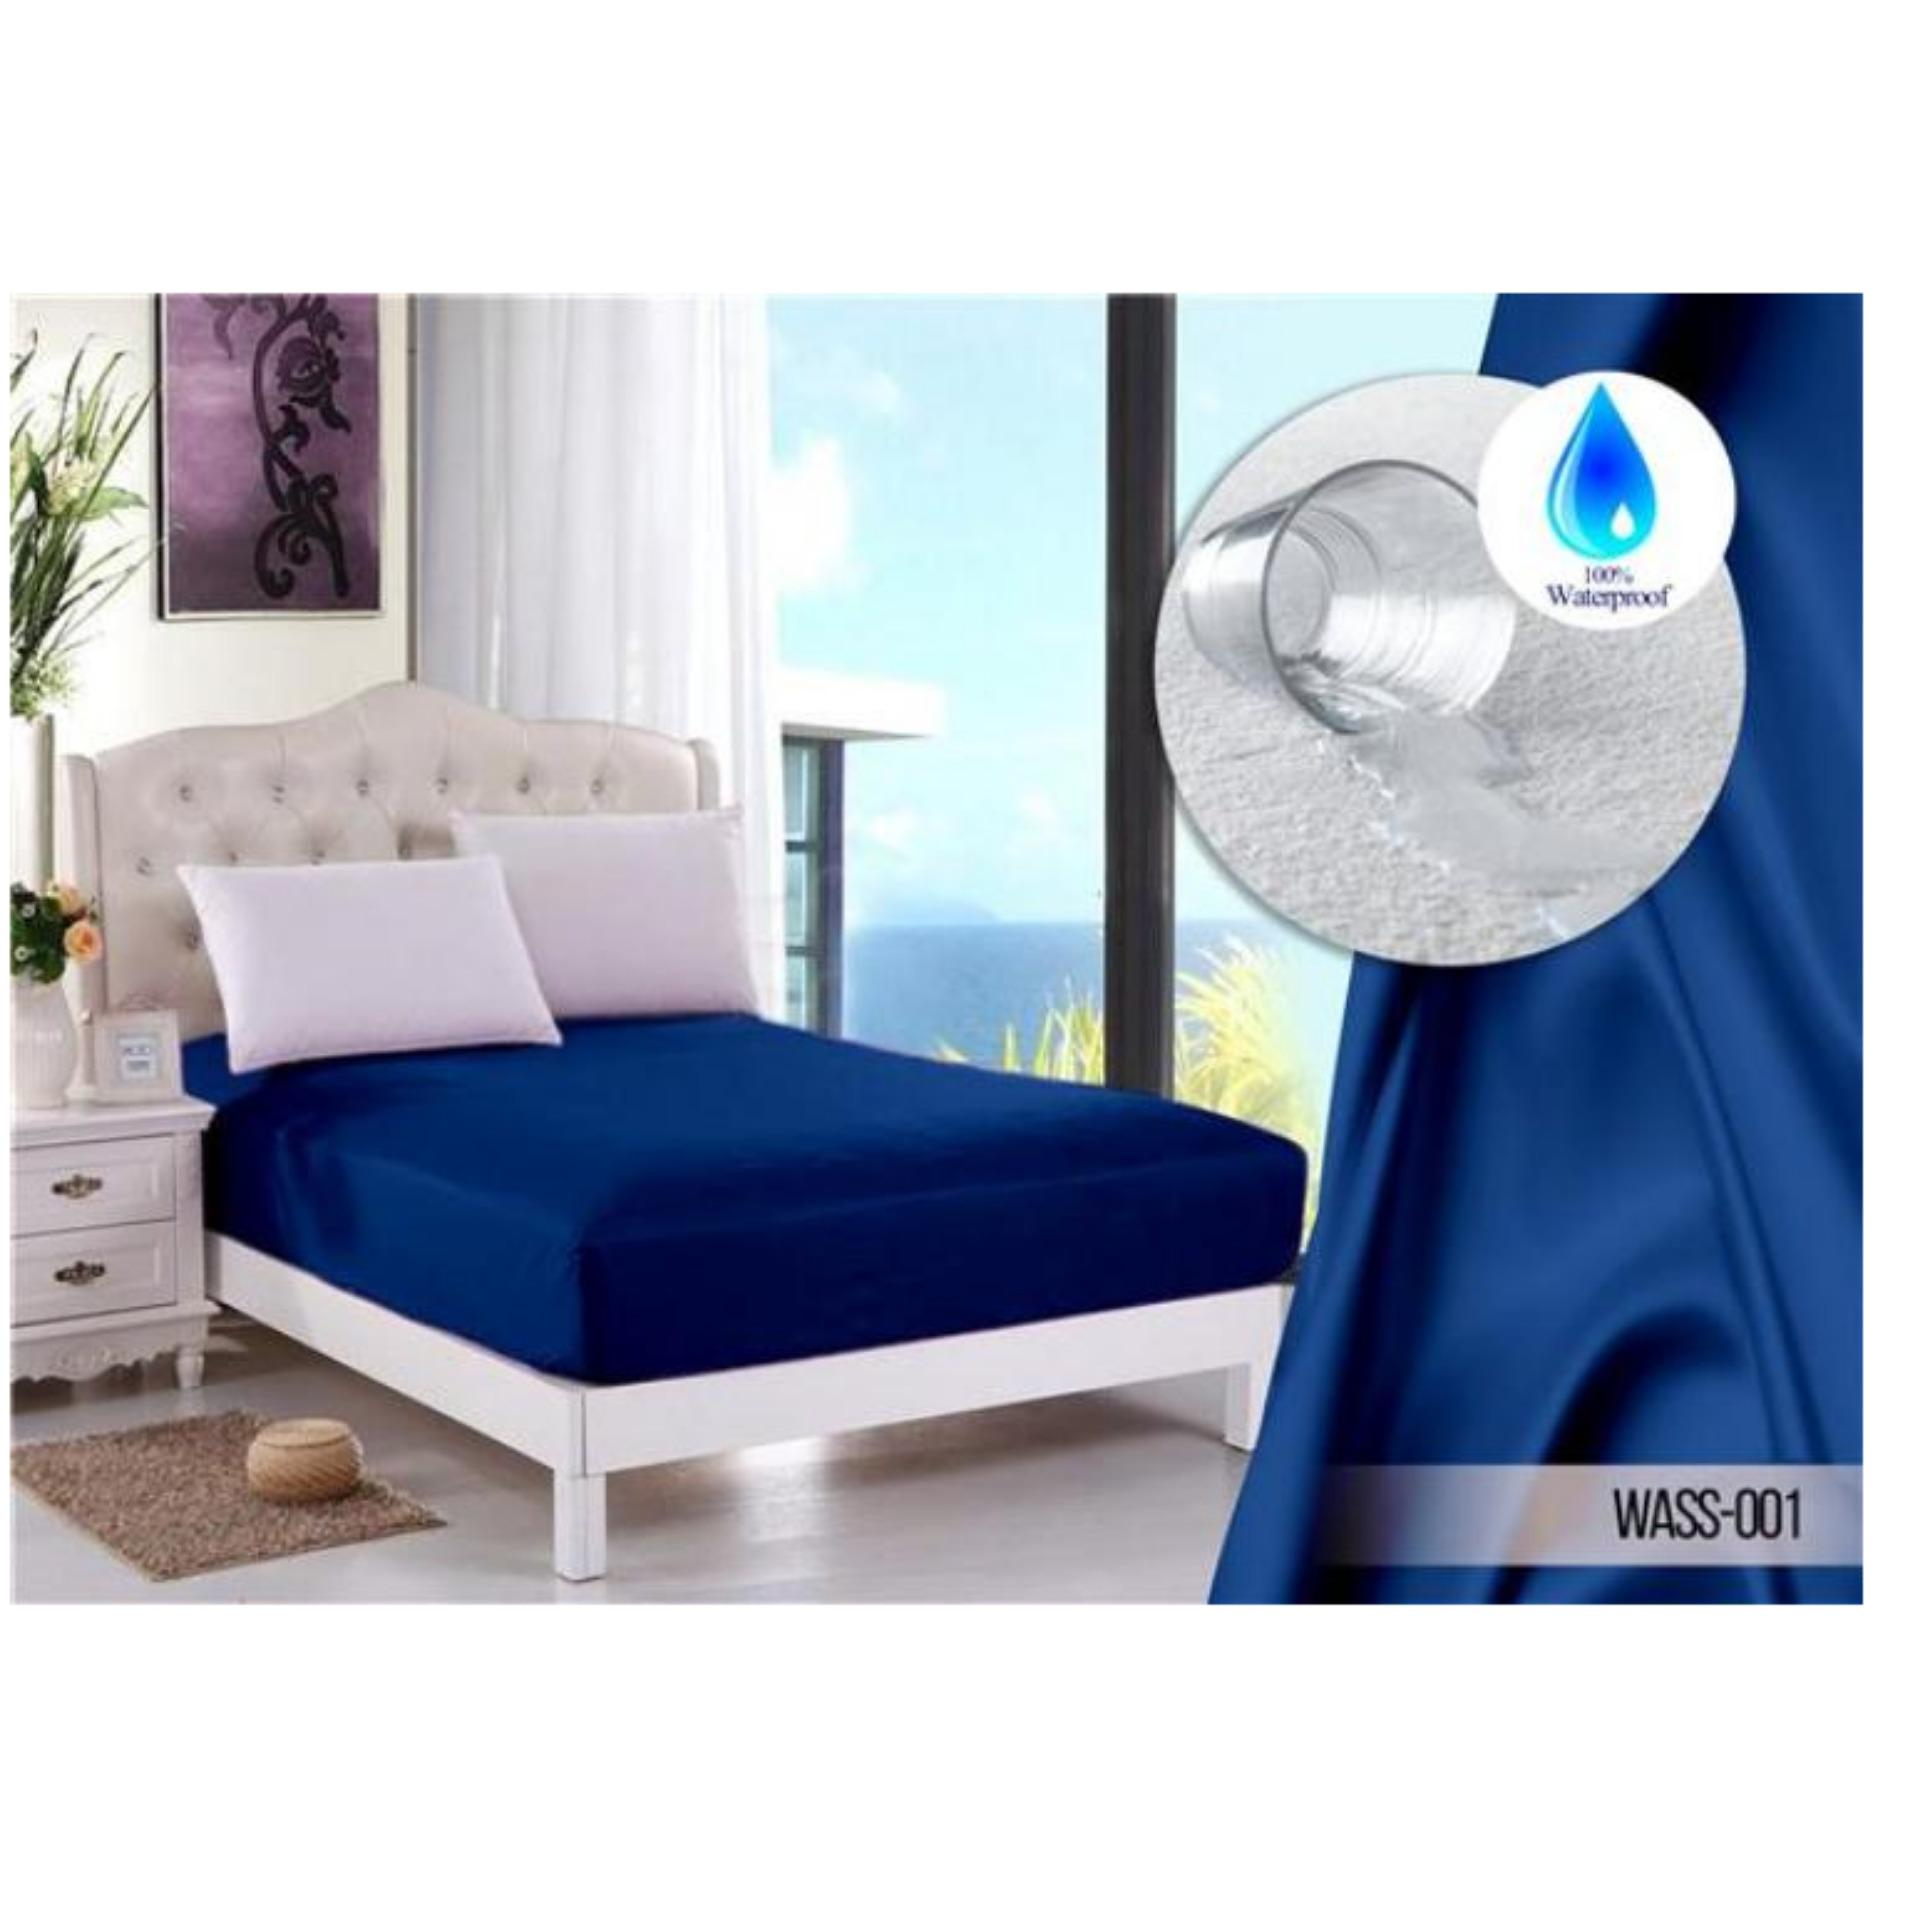 Jual Jaxine Sprei Waterproof Anti Air Biru Tua